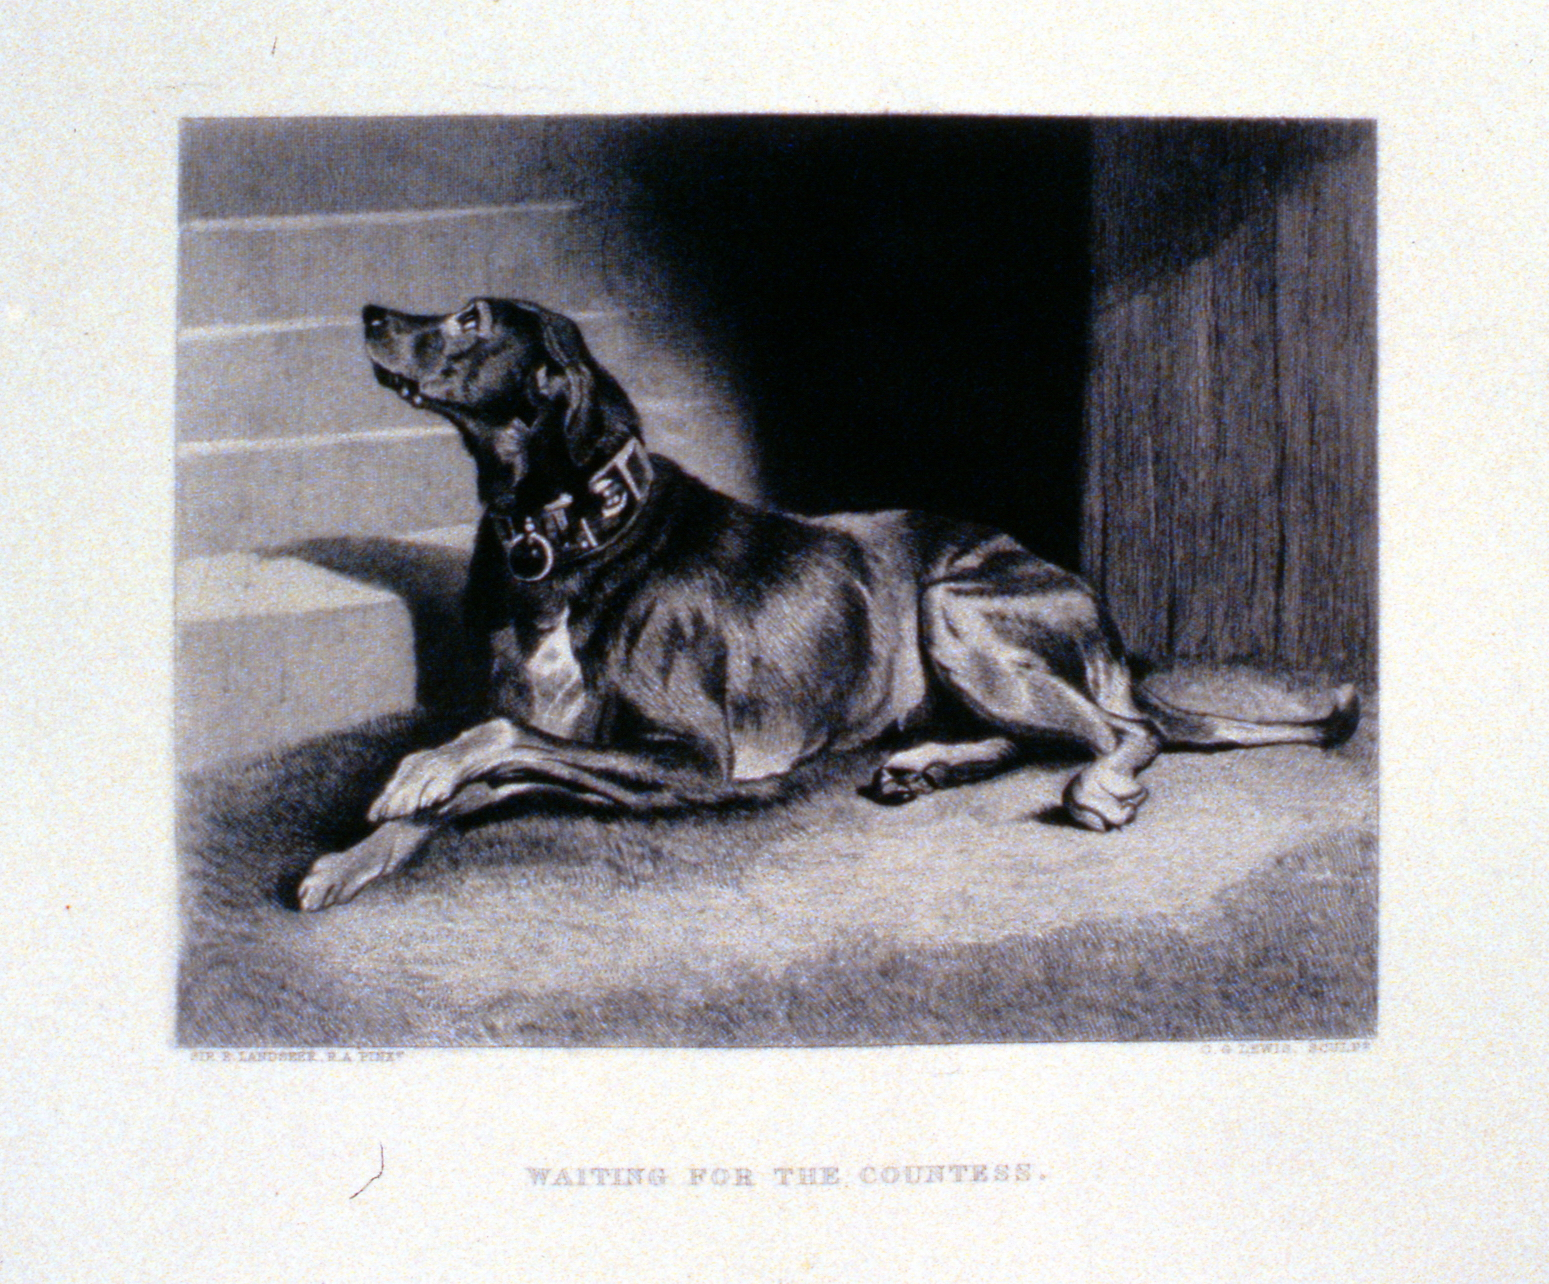 Waiting for the Countess , c. late 19th Century, Charles G. Lewis, steel engraving, 14 cm x 18.3 cm, 1996.08.24, gift of Yvonne Adams